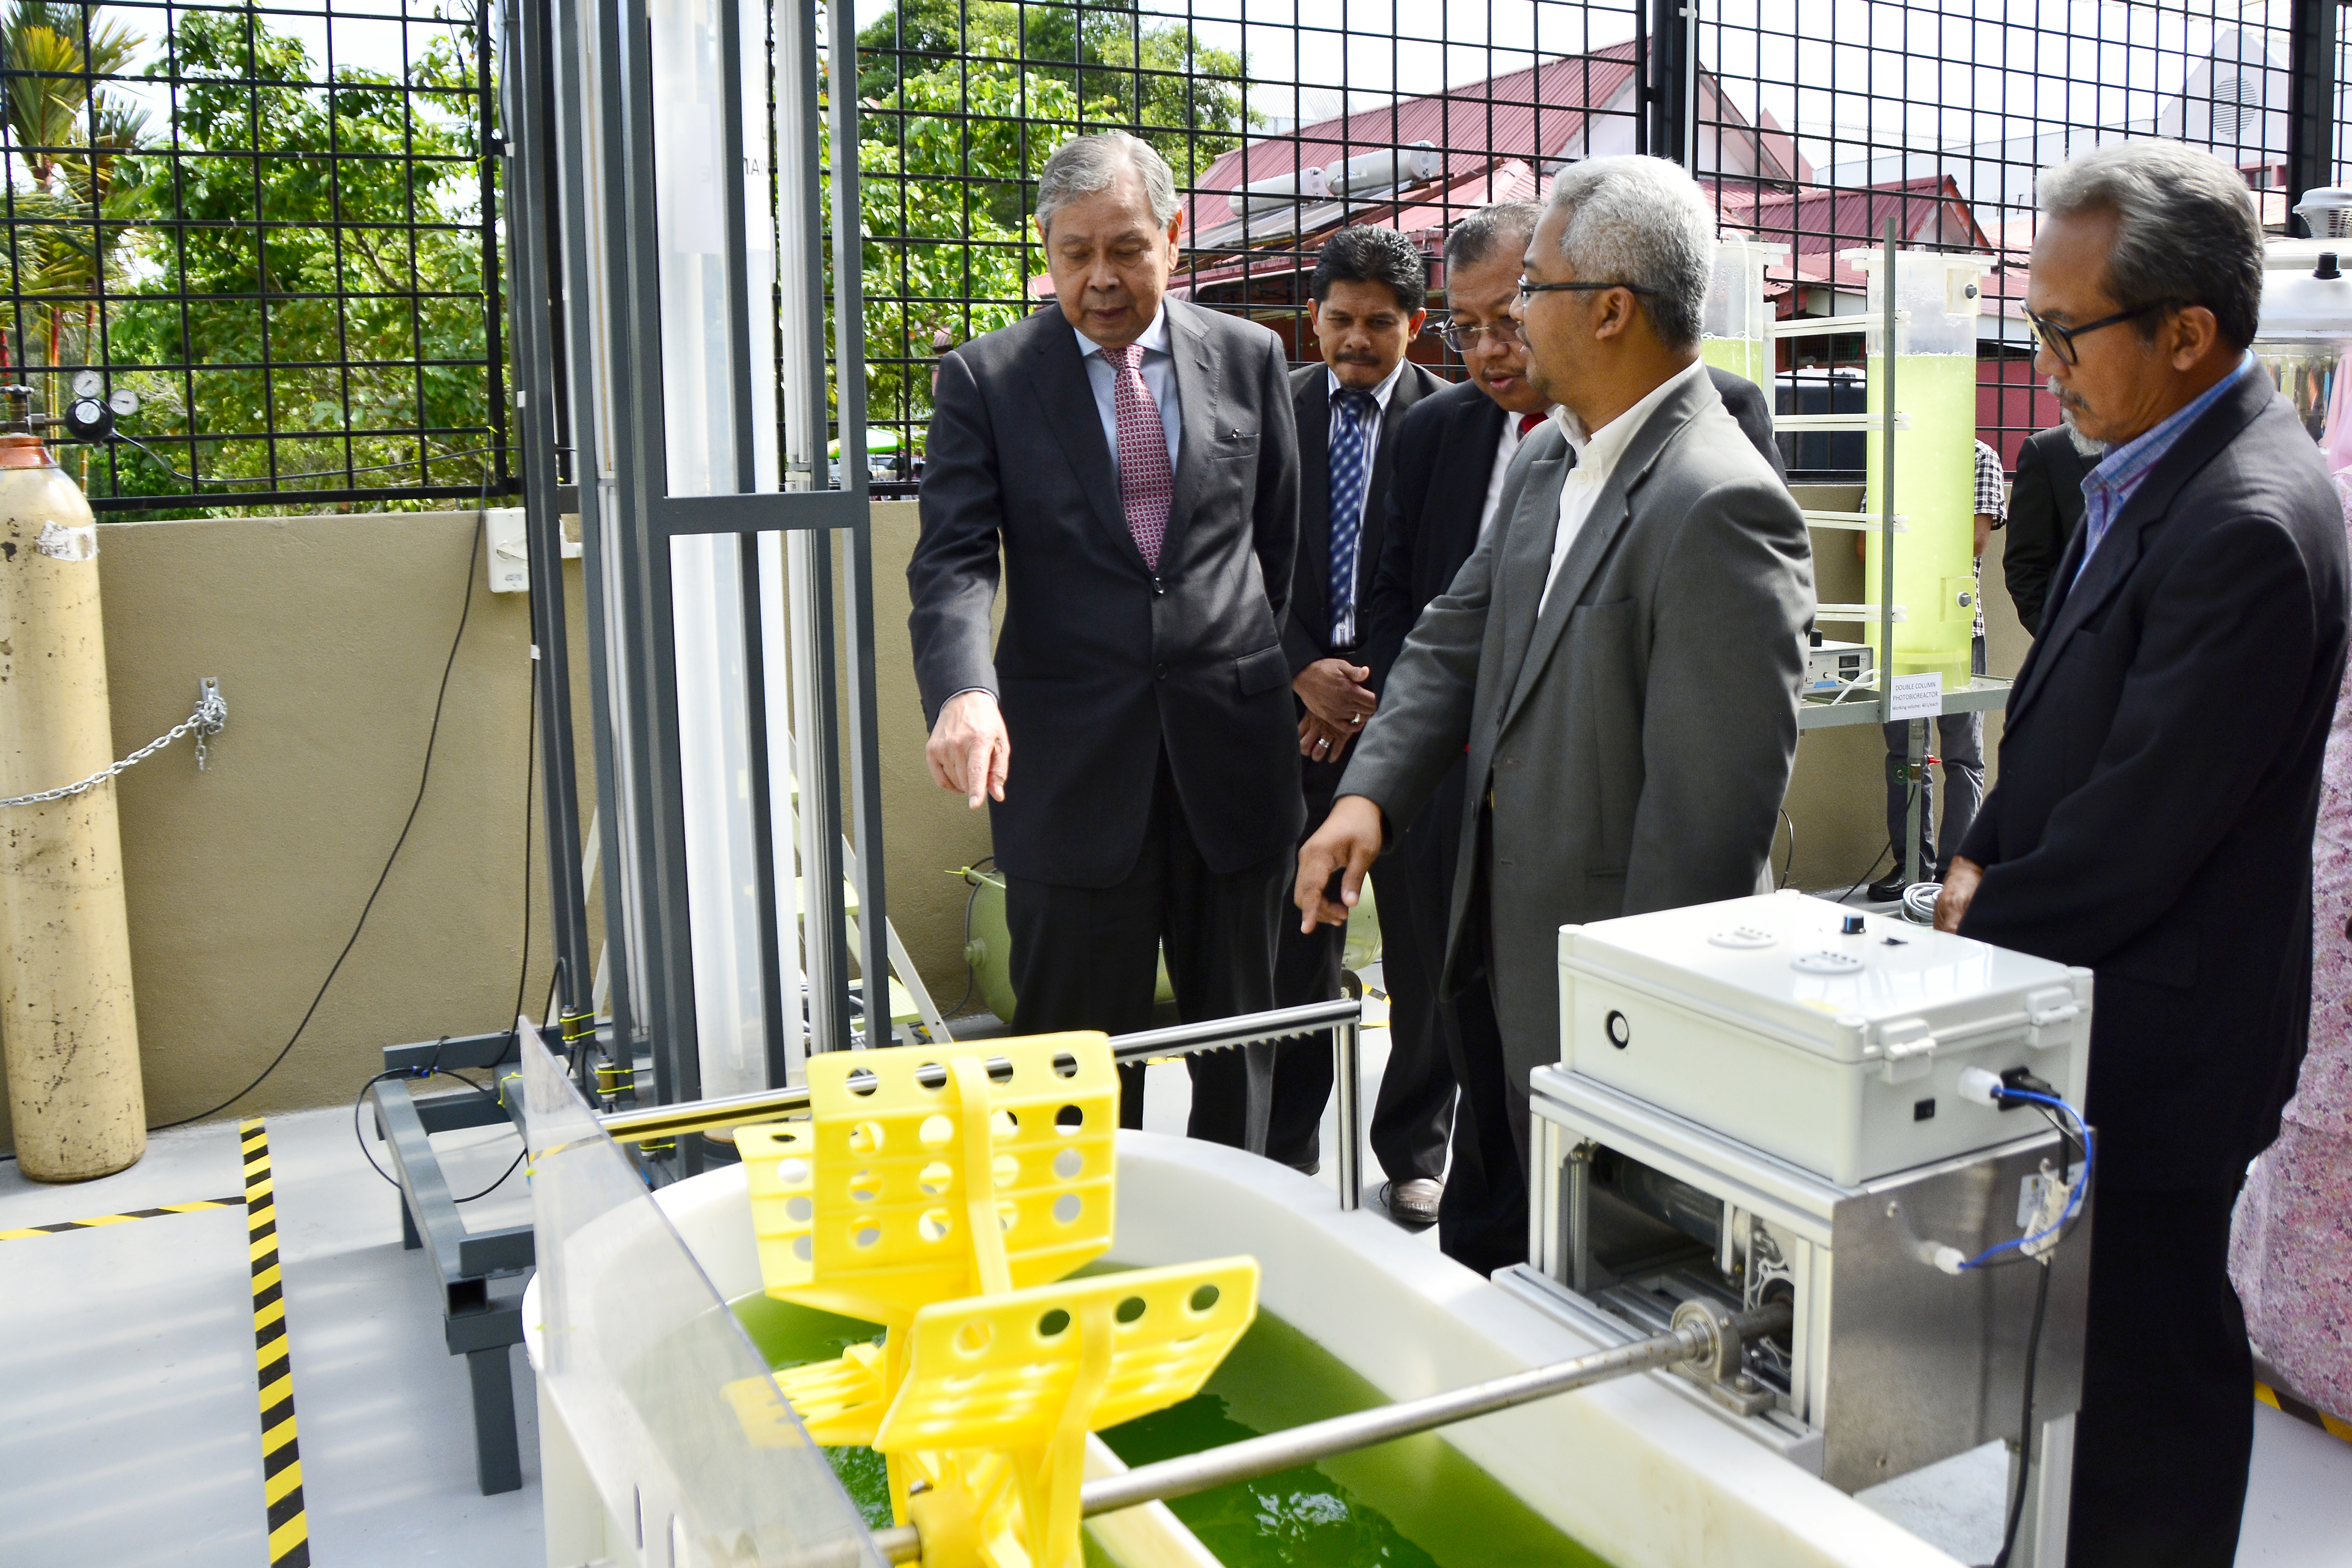 YSD Governing Council Member Tan Sri Dato' Seri Dr Wan Mohd Zahid Mohd Noordin (left) inspects algae growth at UKM's carbon capture lab.